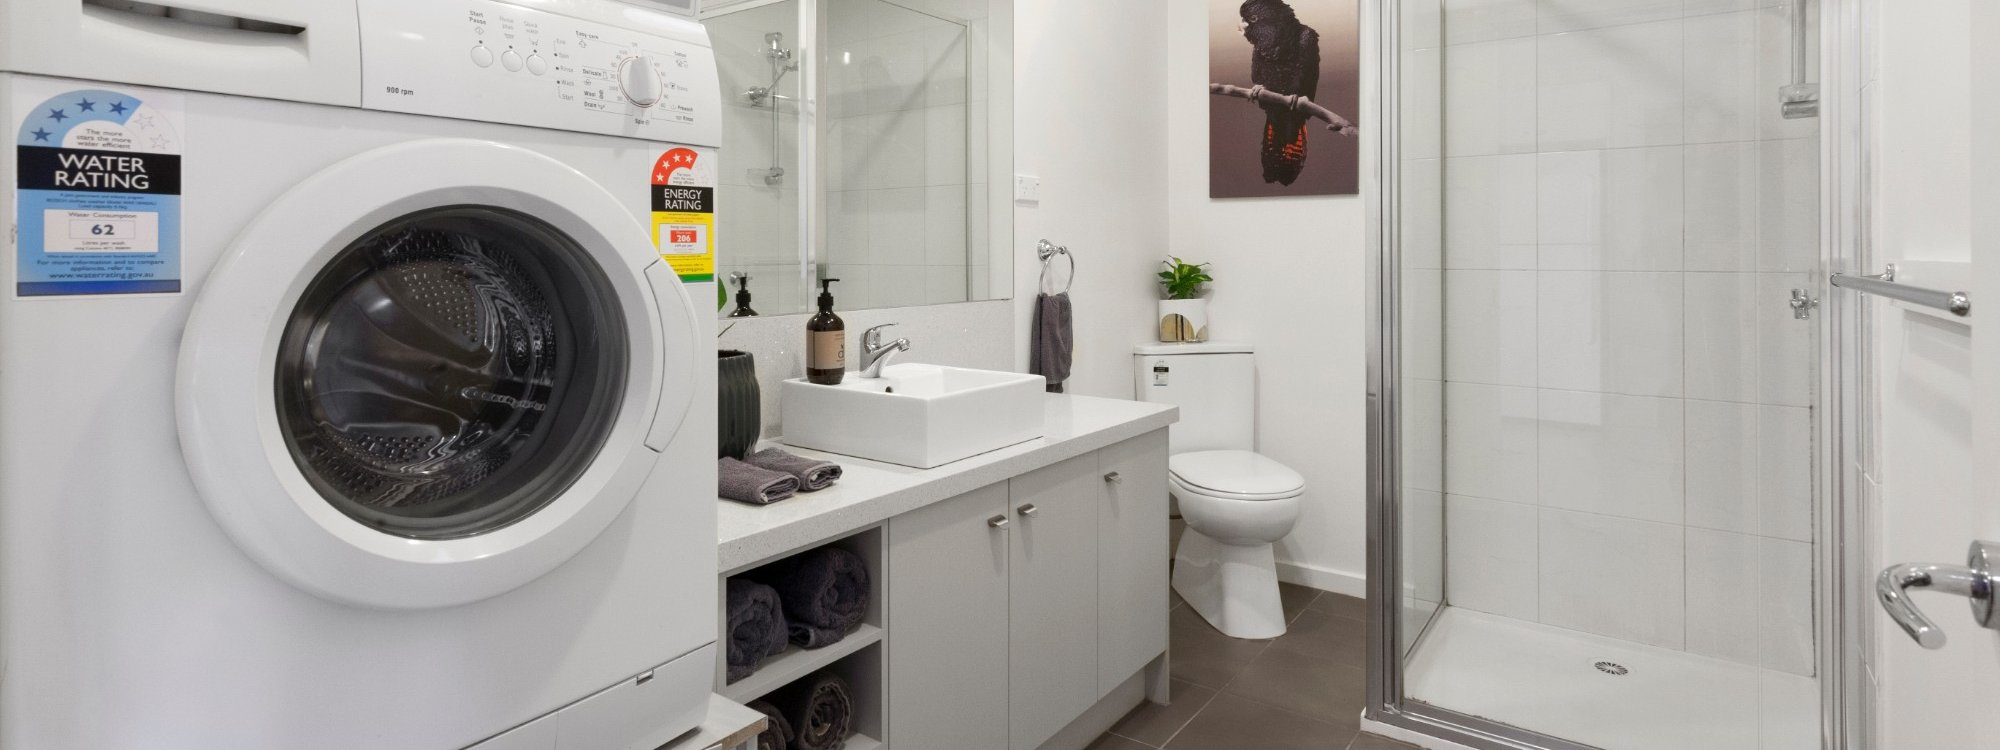 Manallack Apartments Whiteley - Melbourne - Bathroom 1